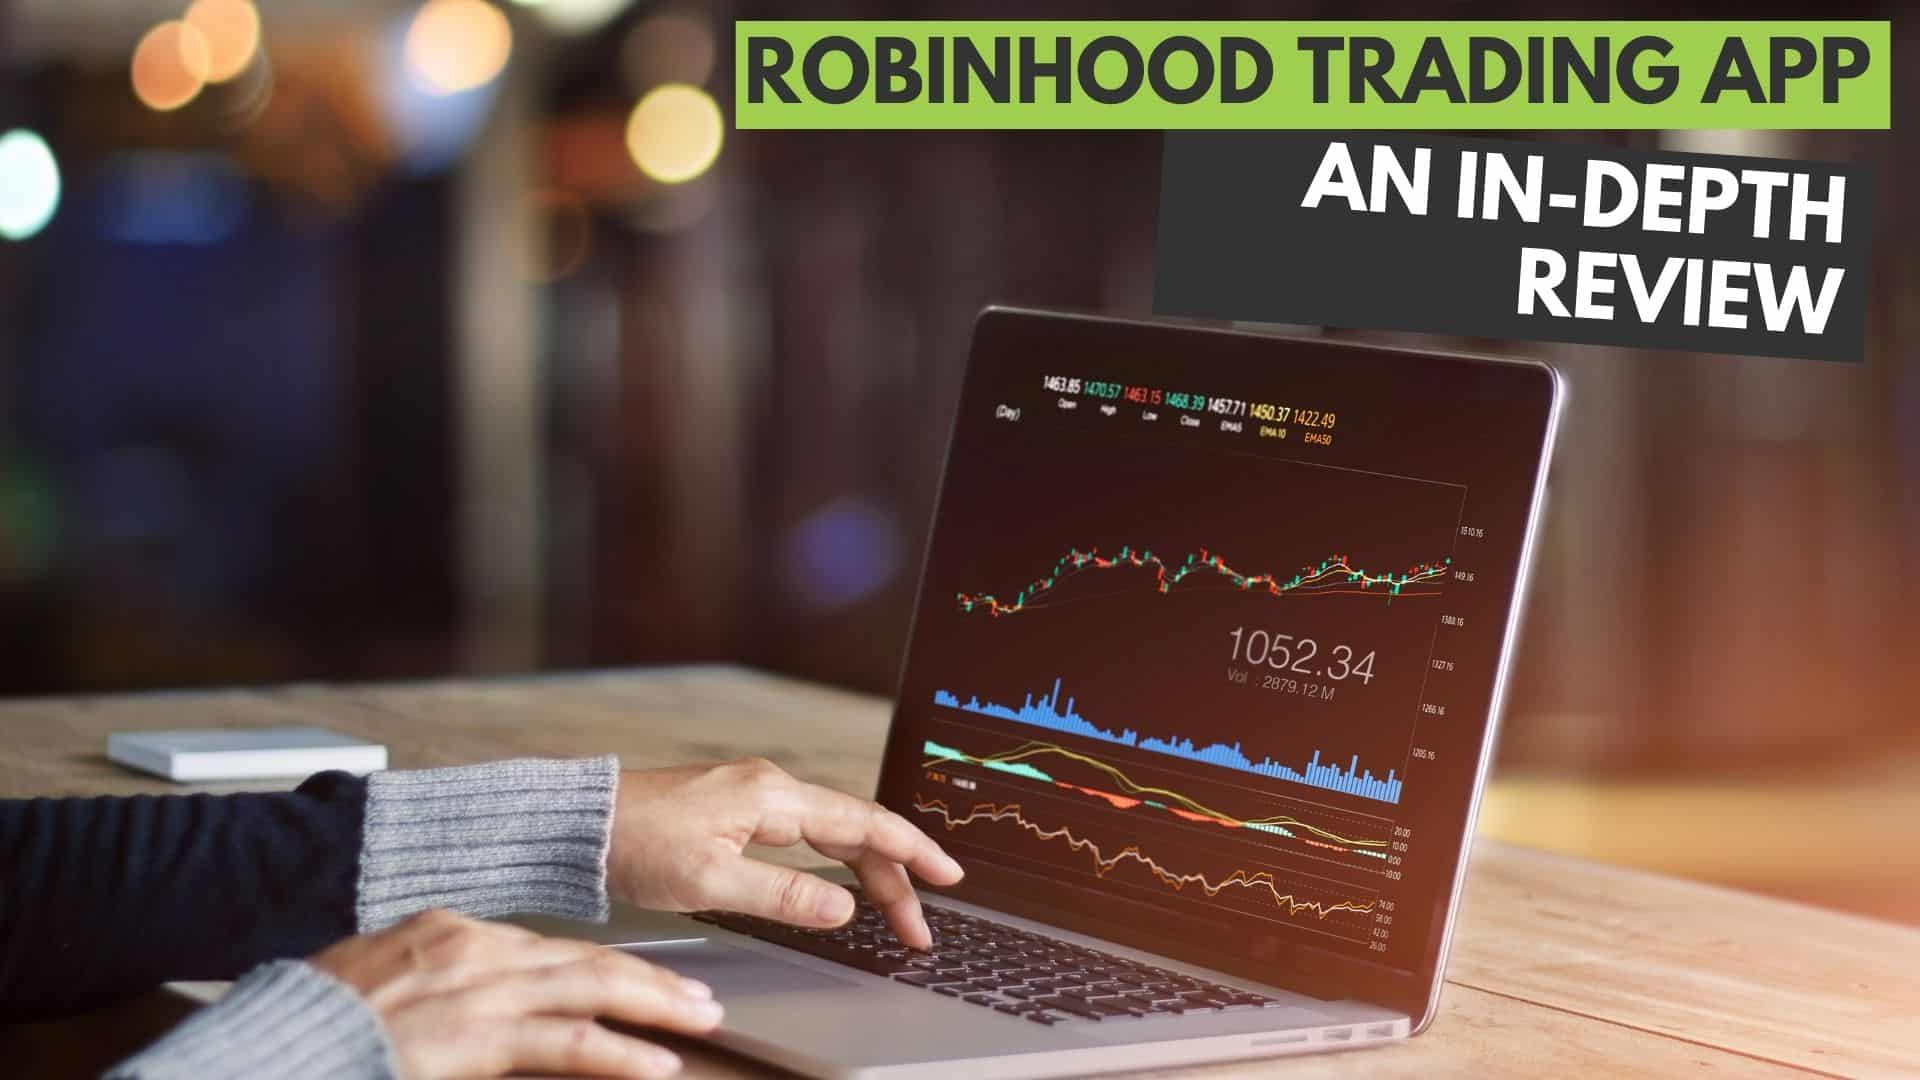 In-Depth Robinhood Trading App Review for 2020